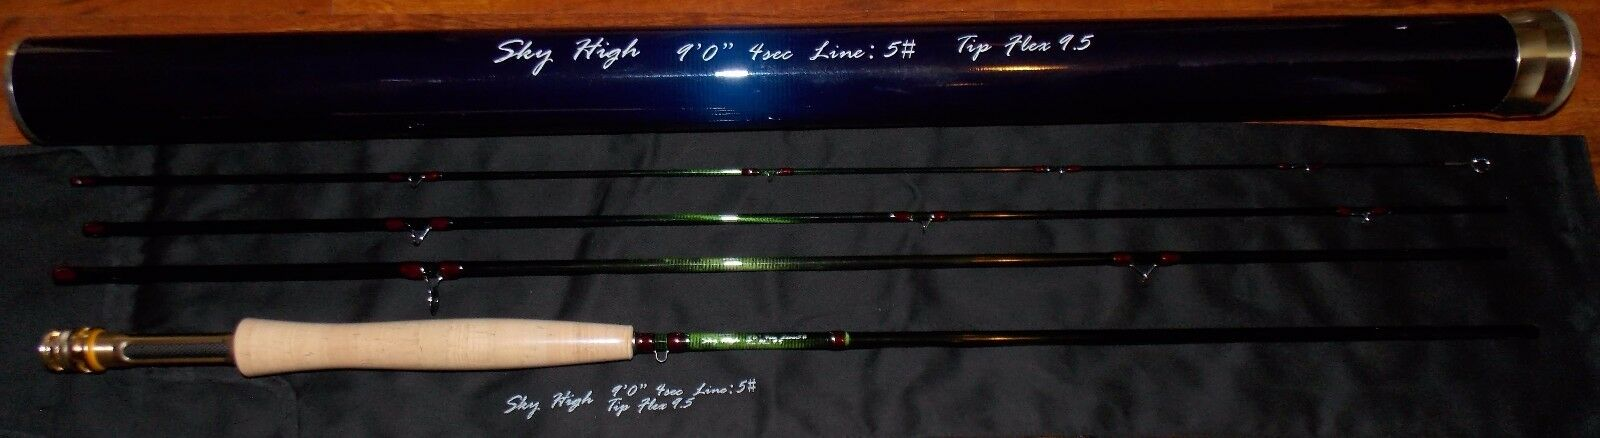 Skyhigh 9'0''  5WT 4Sc Fly Fishing Rod Carbon Fiber Graphite FREE 3 DAY SHIPPING